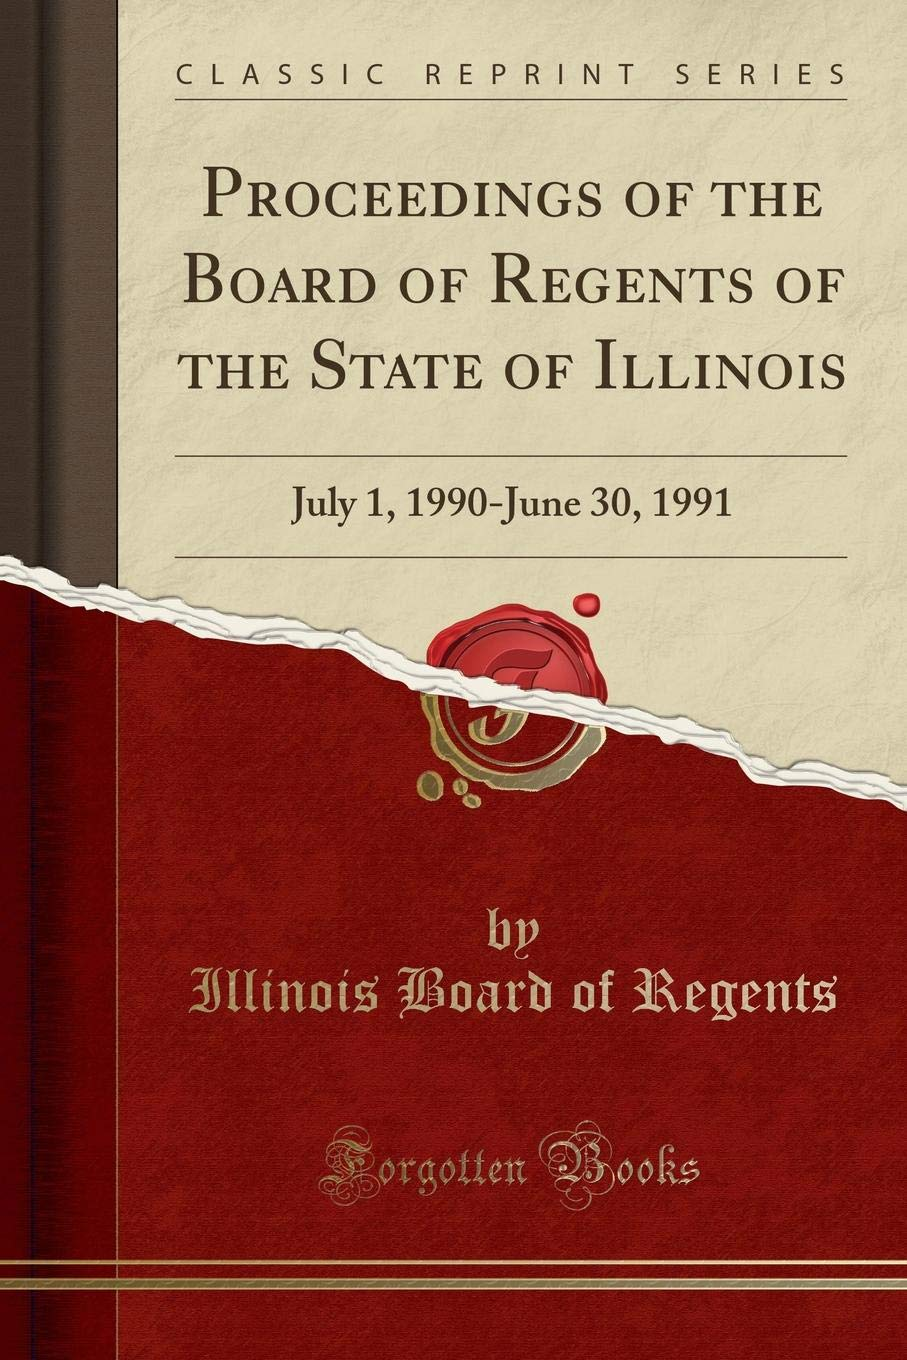 Proceedings of the Board of Regents of the State of Illinois: July 1, 1990-June 30, 1991 (Classic Reprint) ebook